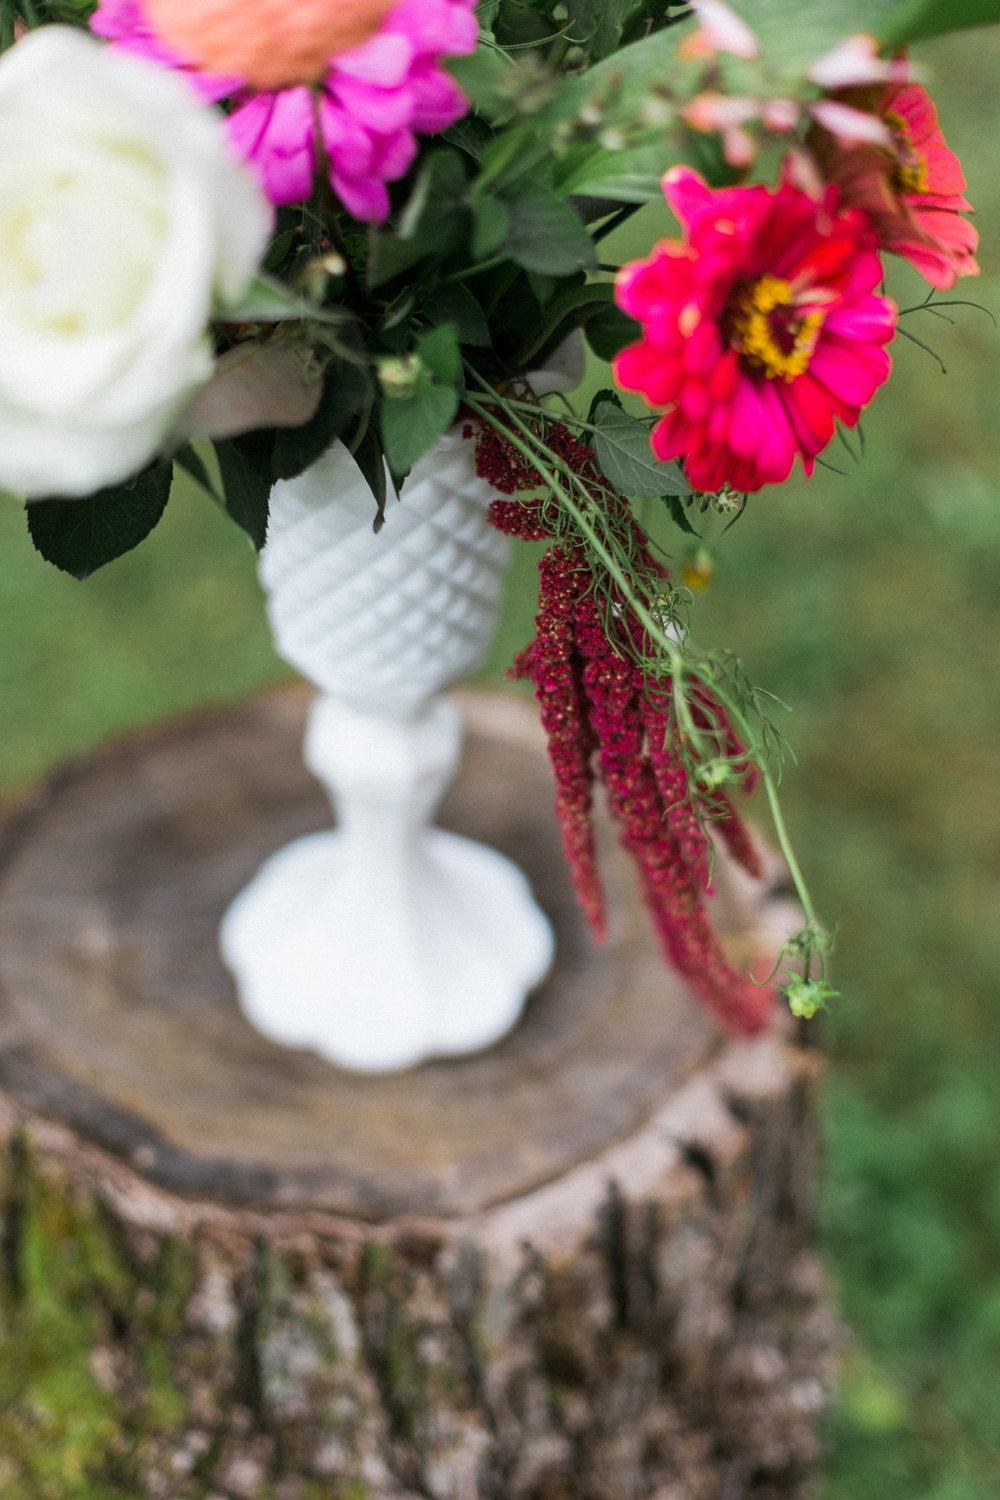 Woodland Wisconsin Wedding | Photography by: Laurelyn Savannah Photography